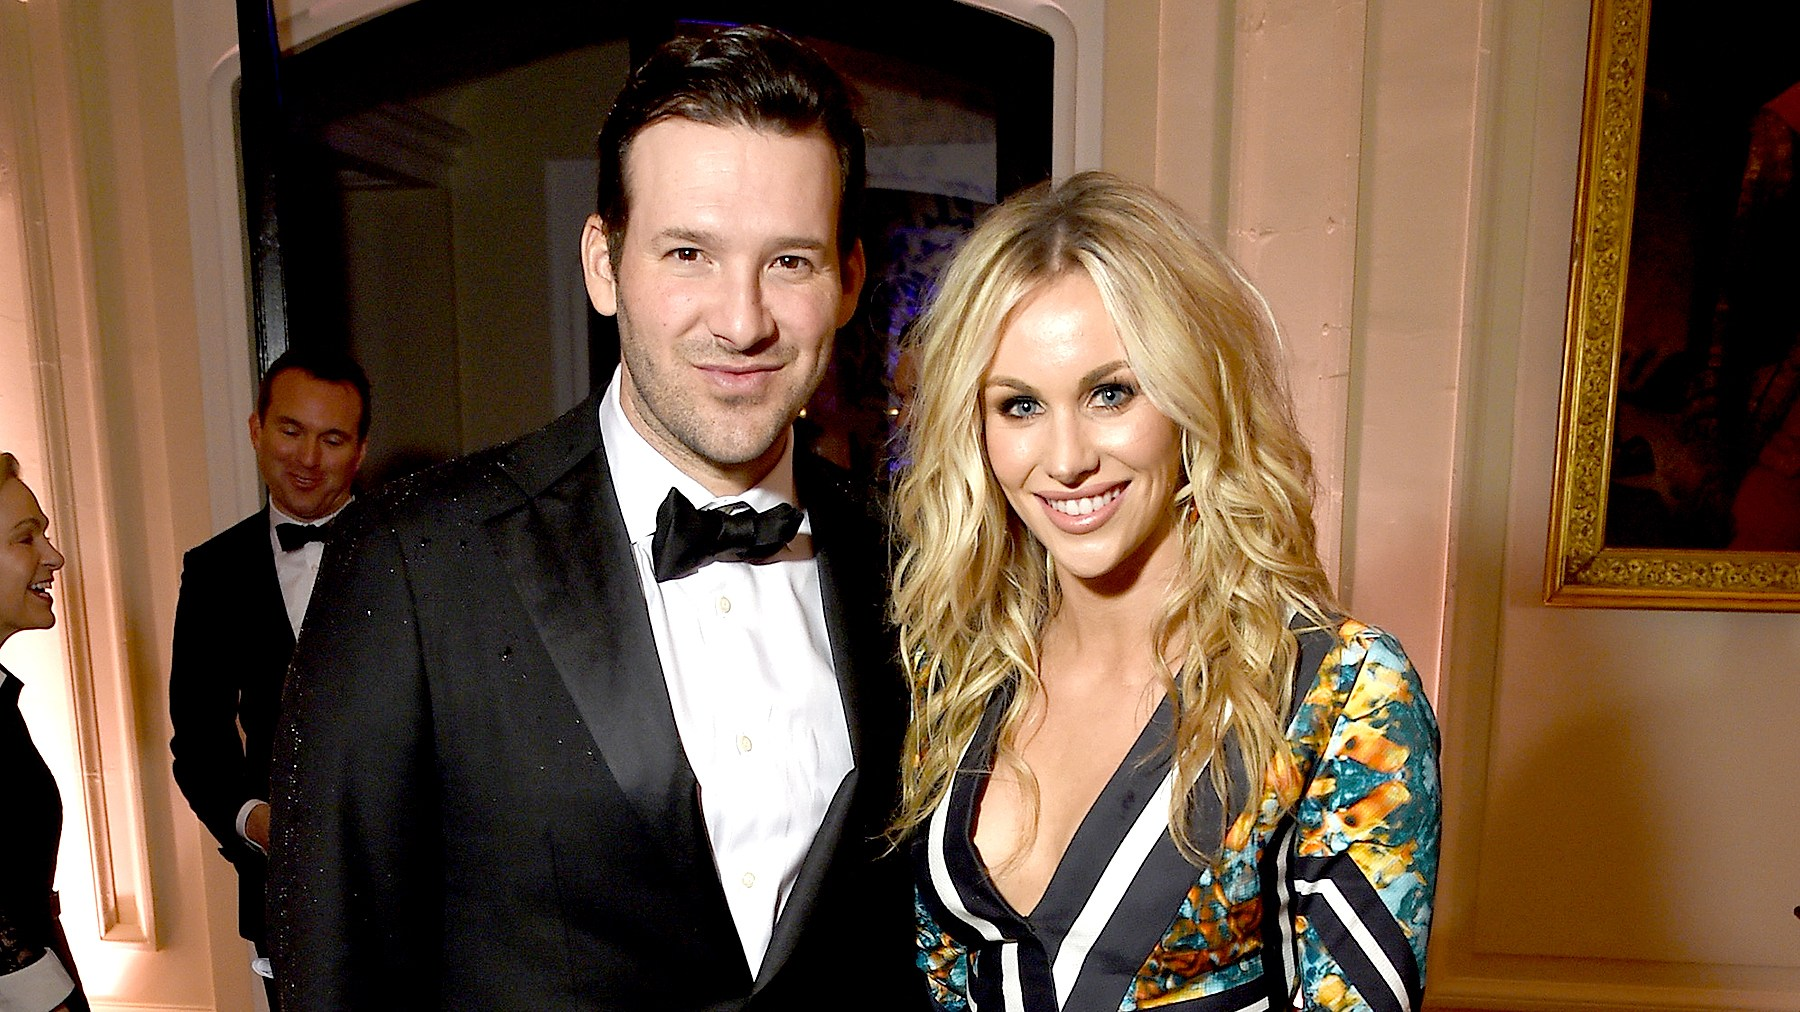 Tony Romo and Candice Crawford attend the Bloomberg & Vanity Fair cocktail reception following the 2015 WHCA Dinner at the residence of the French Ambassador on April 25, 2015 in Washington, DC.